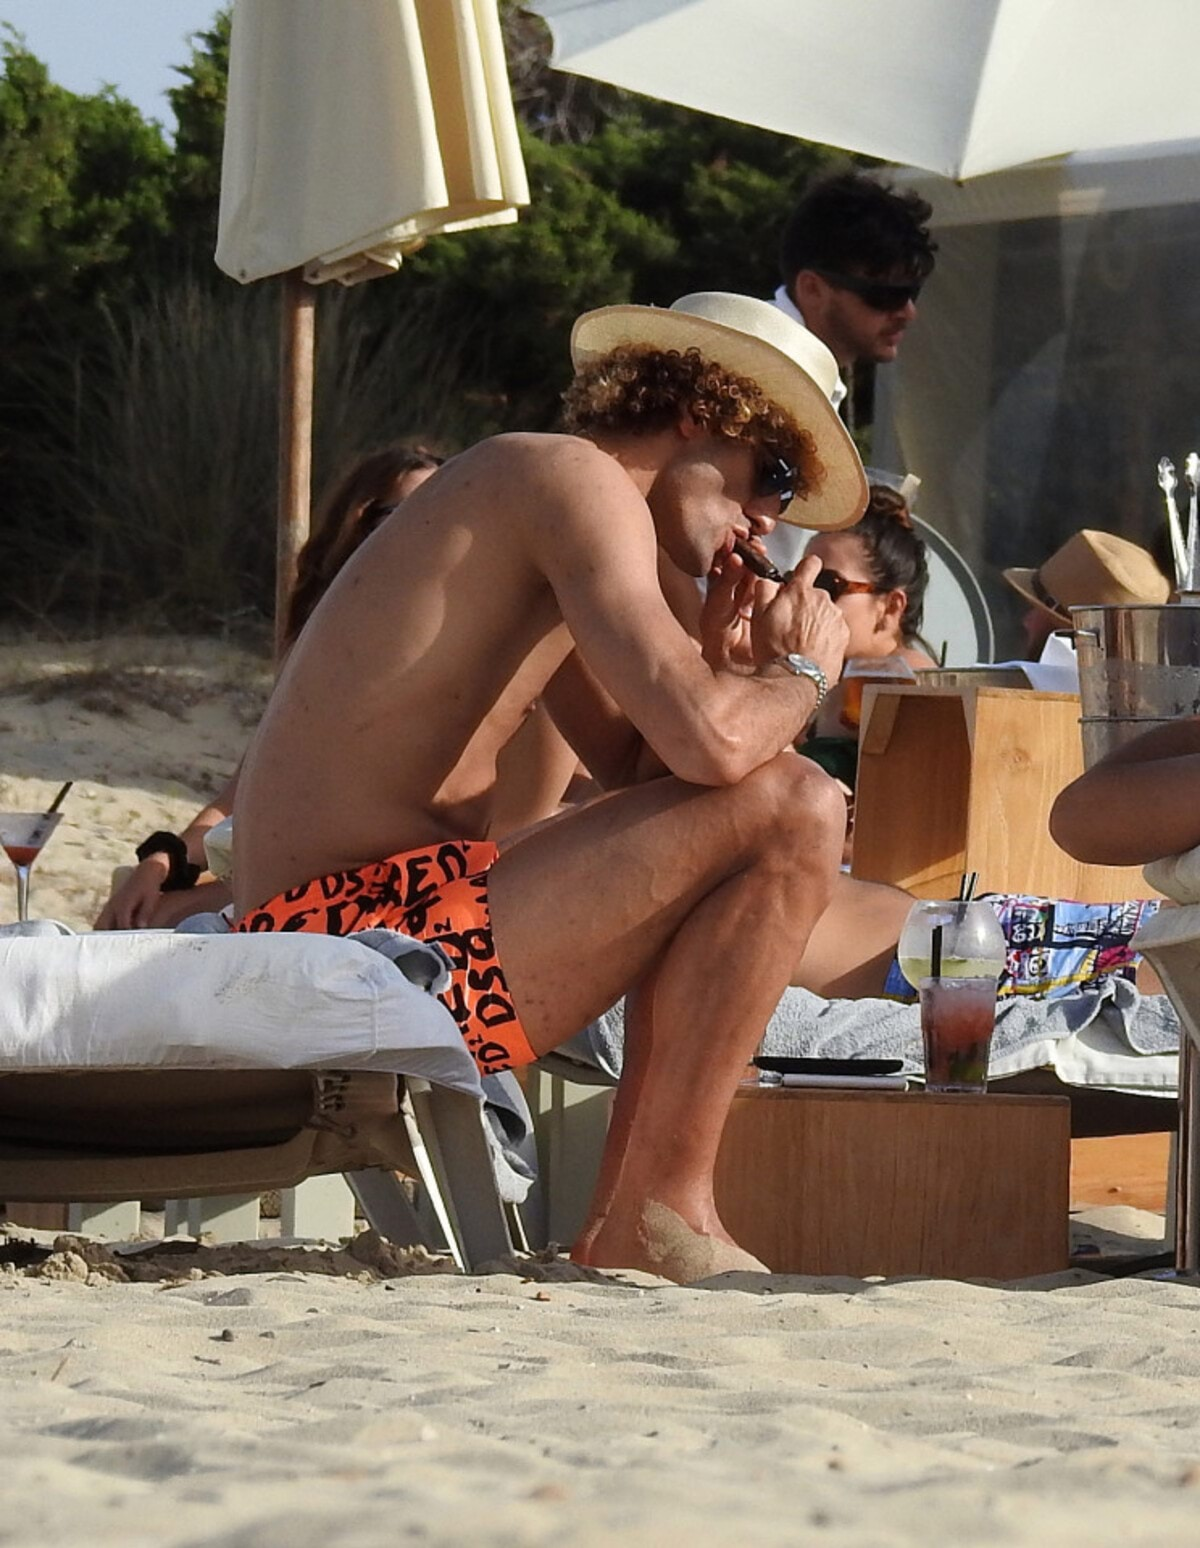 """EXCLUSIVE: Manchester United flop Marouane Fellaini puffs on a giant cigar - just days after Belgium were dumped out of Euro 2016 by Wales. The Belgian star, 28, was spotted relaxing on holiday in Ibiza with twin brother Mansour. An onlooker said: """"He didn't look like he had a care in the world."""" The group enjoyed drinks in the sunshine yesterday (July 4) surrounded by bikini-clad girls. Fellaini - in sunglasses and a hat - was seen knocking back what appeared to be cocktails and posing for photos with a fan. Pre-tournament favourites Belgium were knocked out of the competition after losing to Wales 3-1 on July 1. Fellaini has struggled to meet expectations at Old Trafford since signing with the club in the summer of 2013. Pics taken July 4th."""